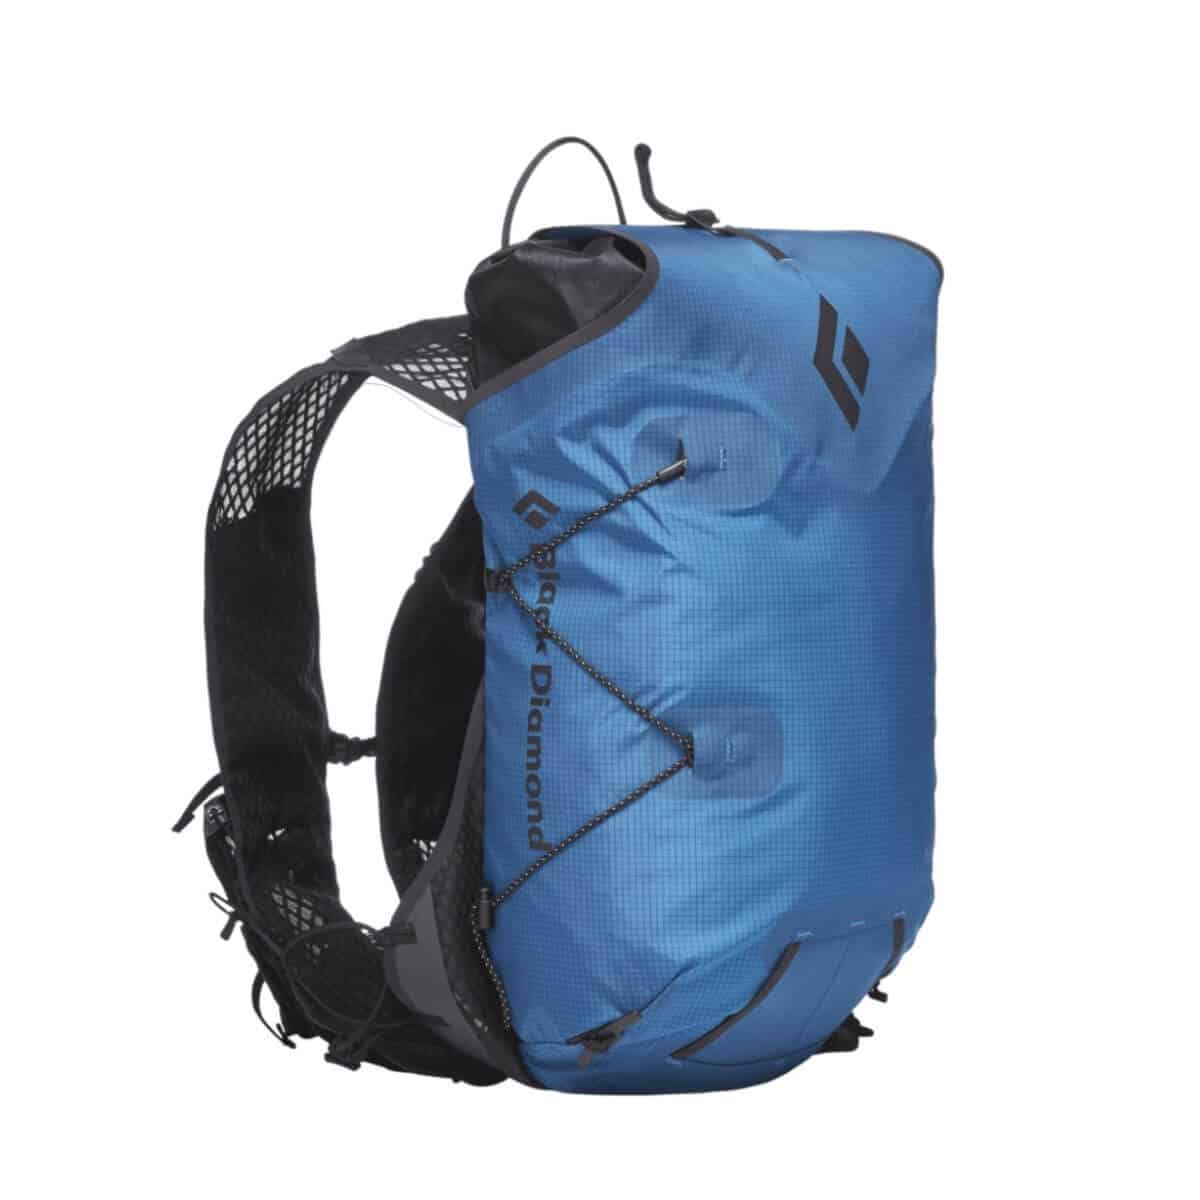 Blue and black hydration backpack.